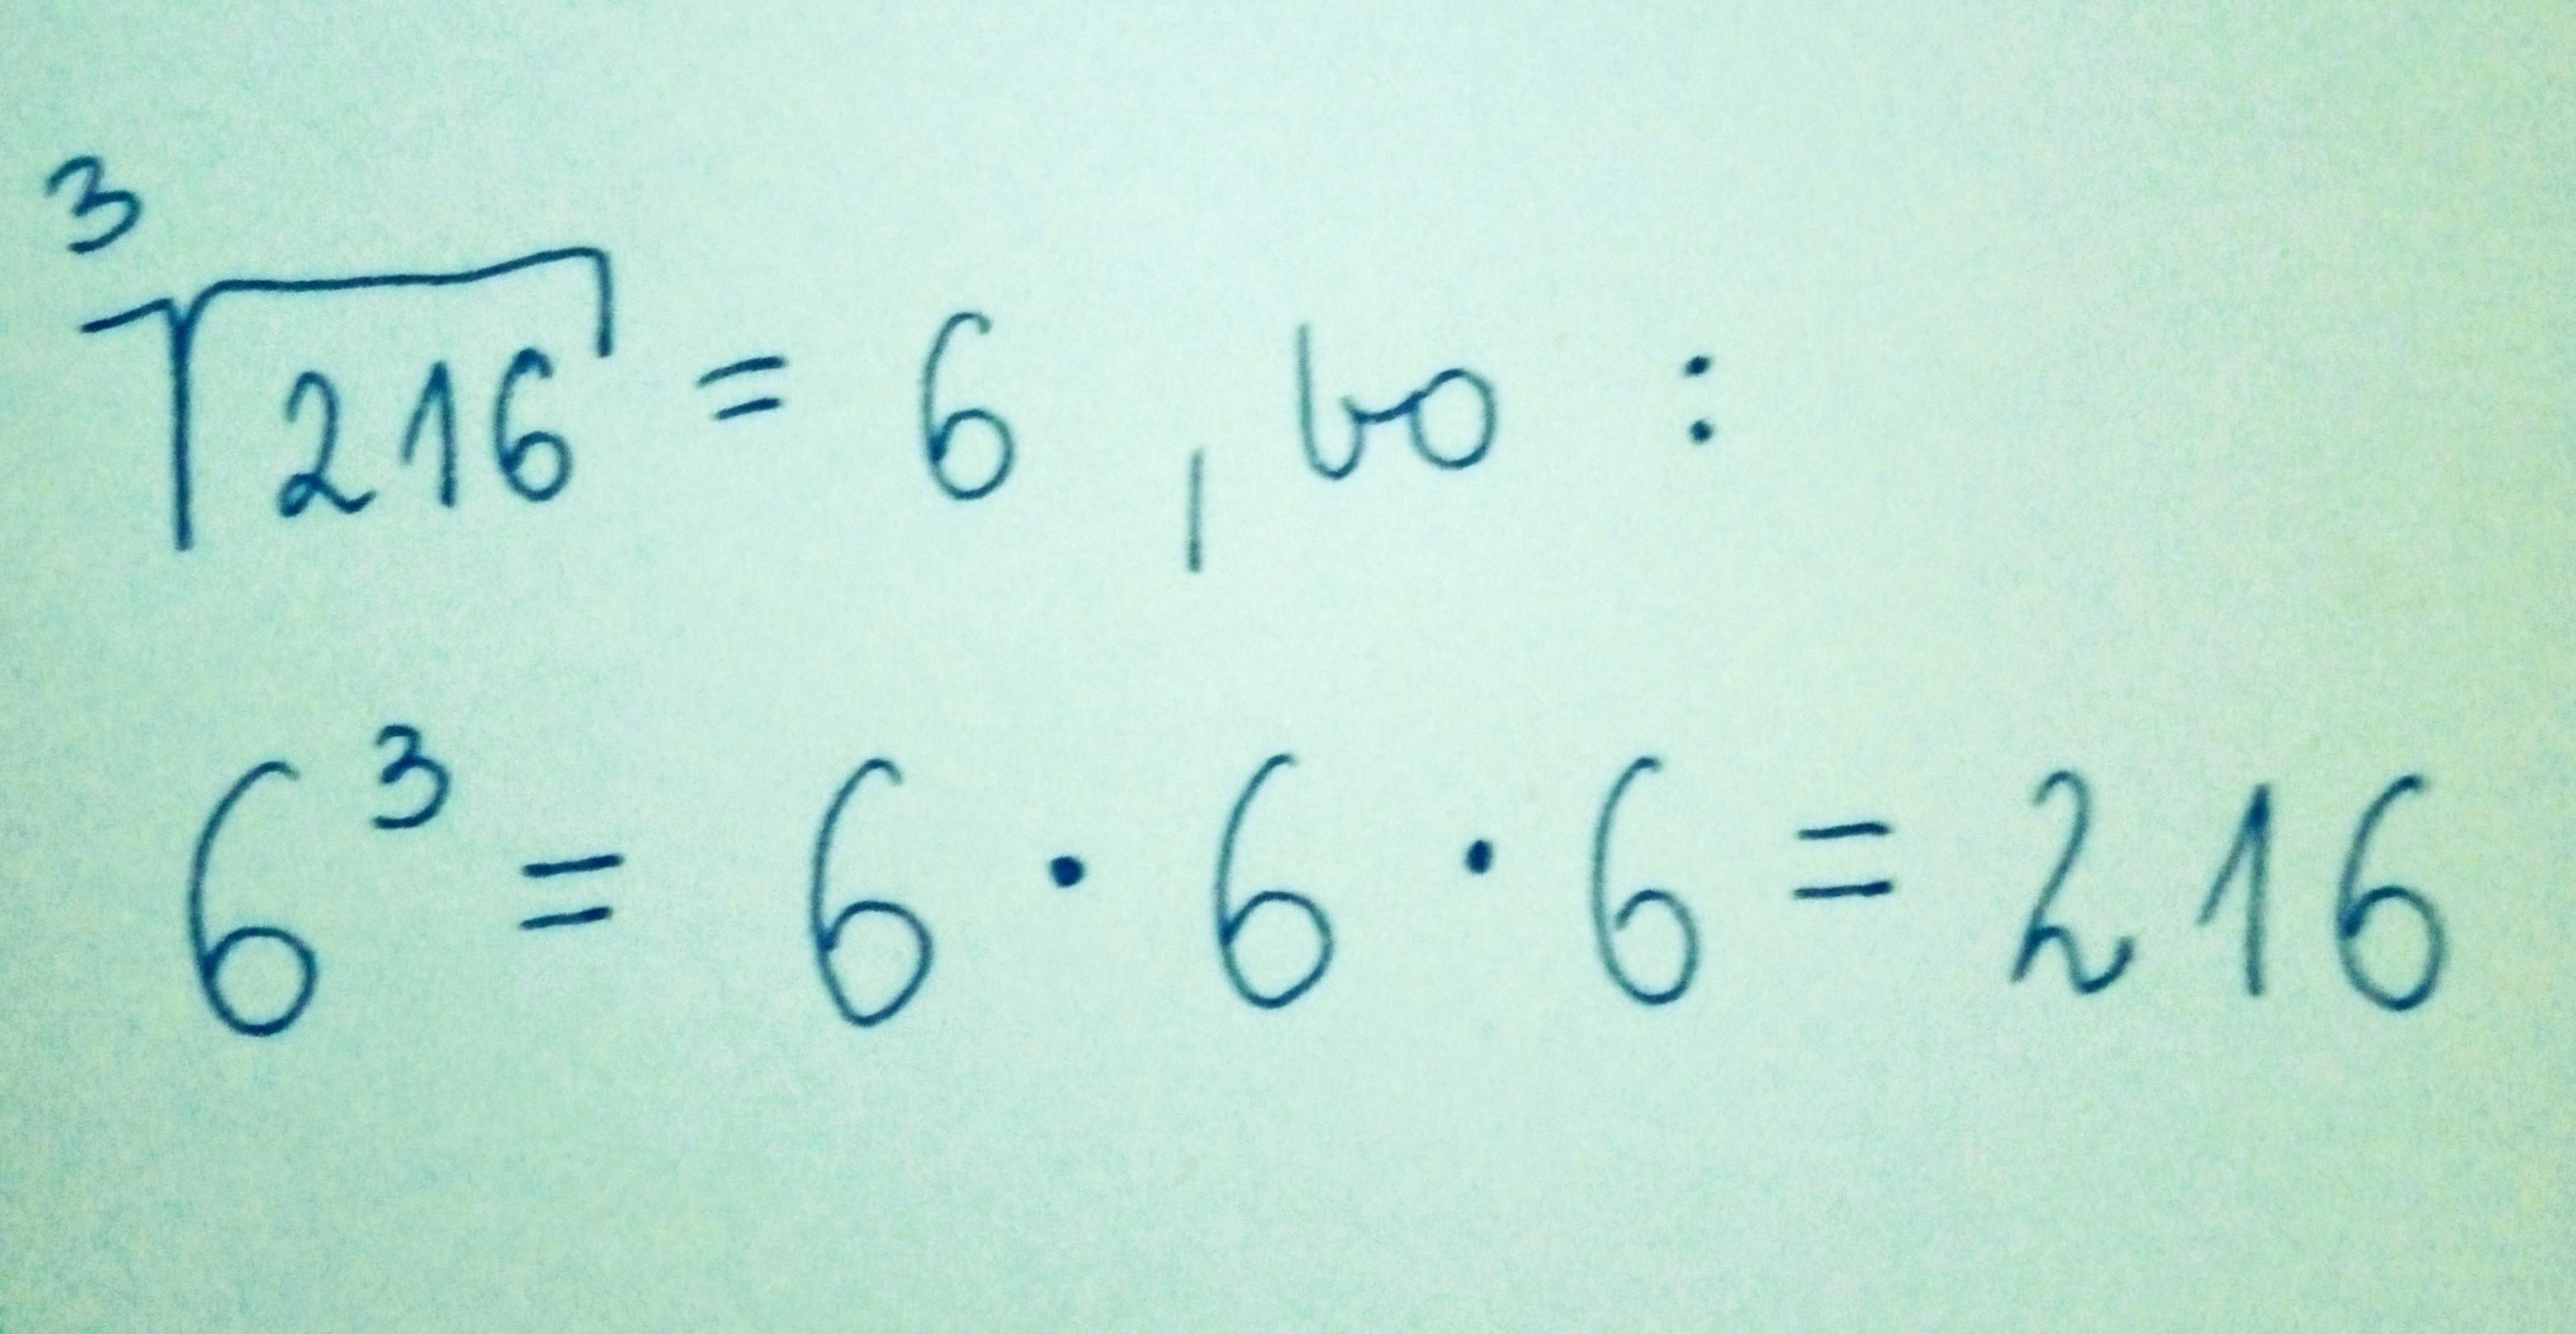 expand [ 2/3a+3/4b]^2 - Brainly.in